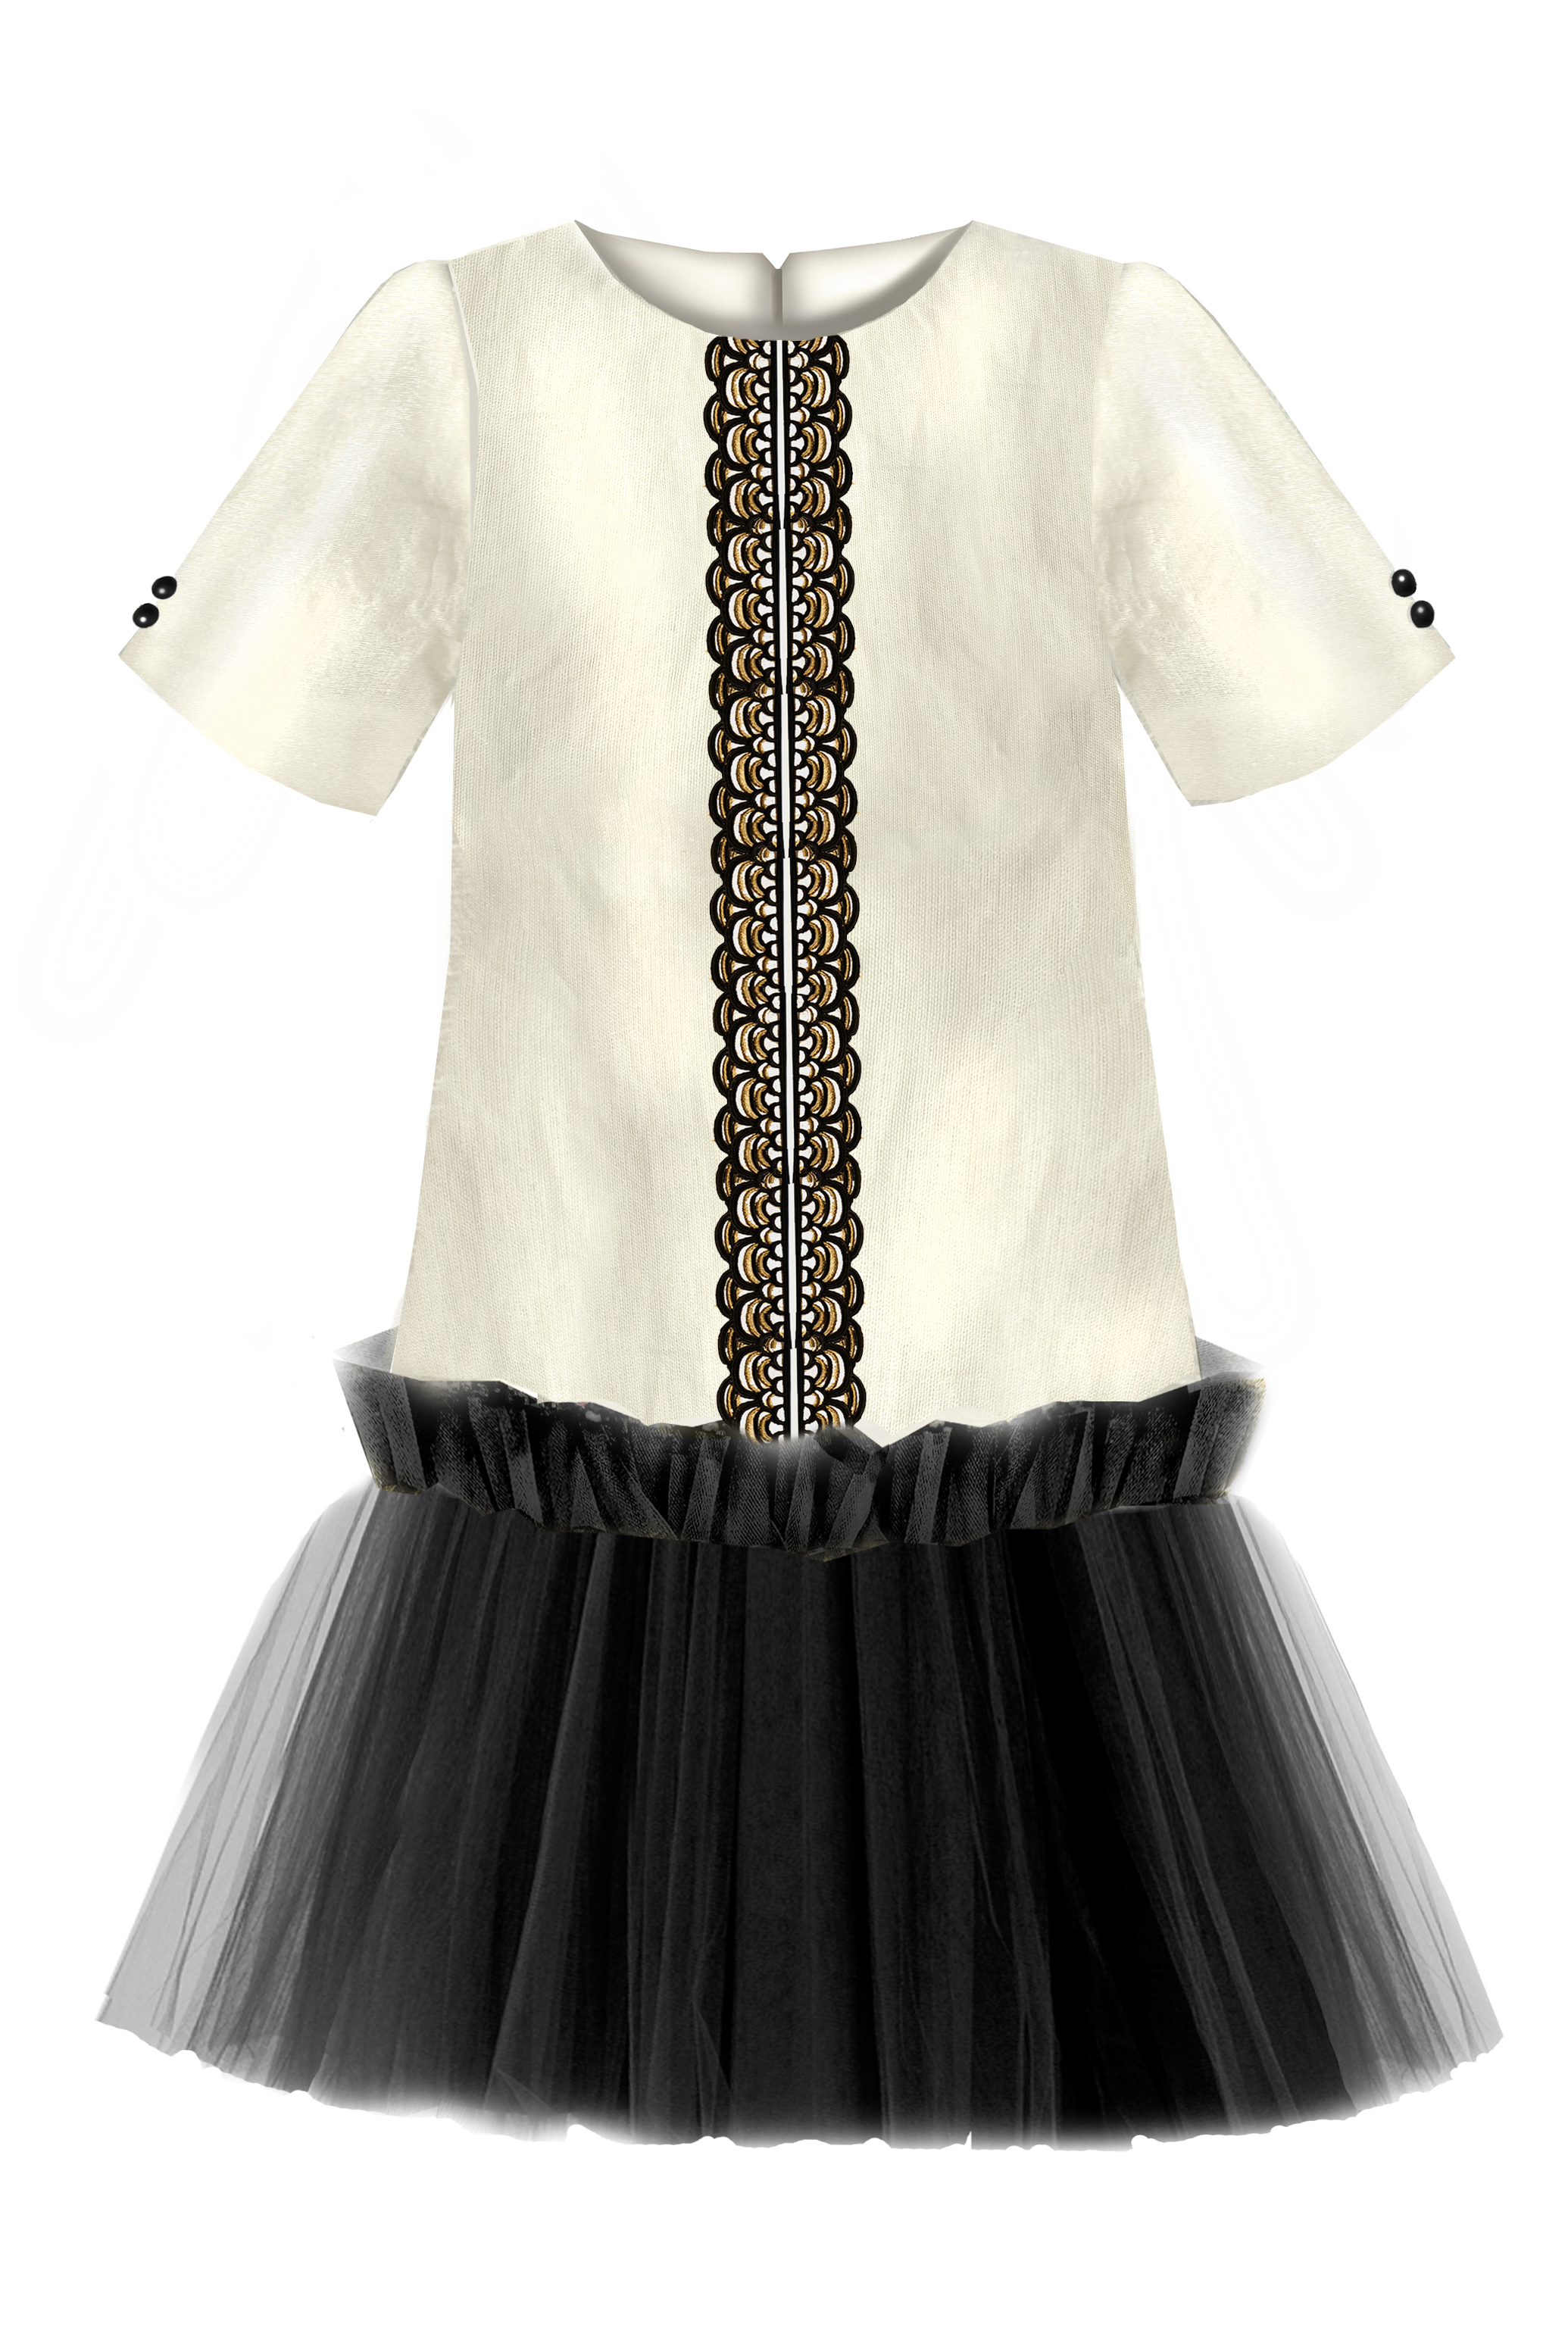 01d22977ad5911 NEW! Golden Beige Viscose Girls Trapeze Dress with Black Lace and ...